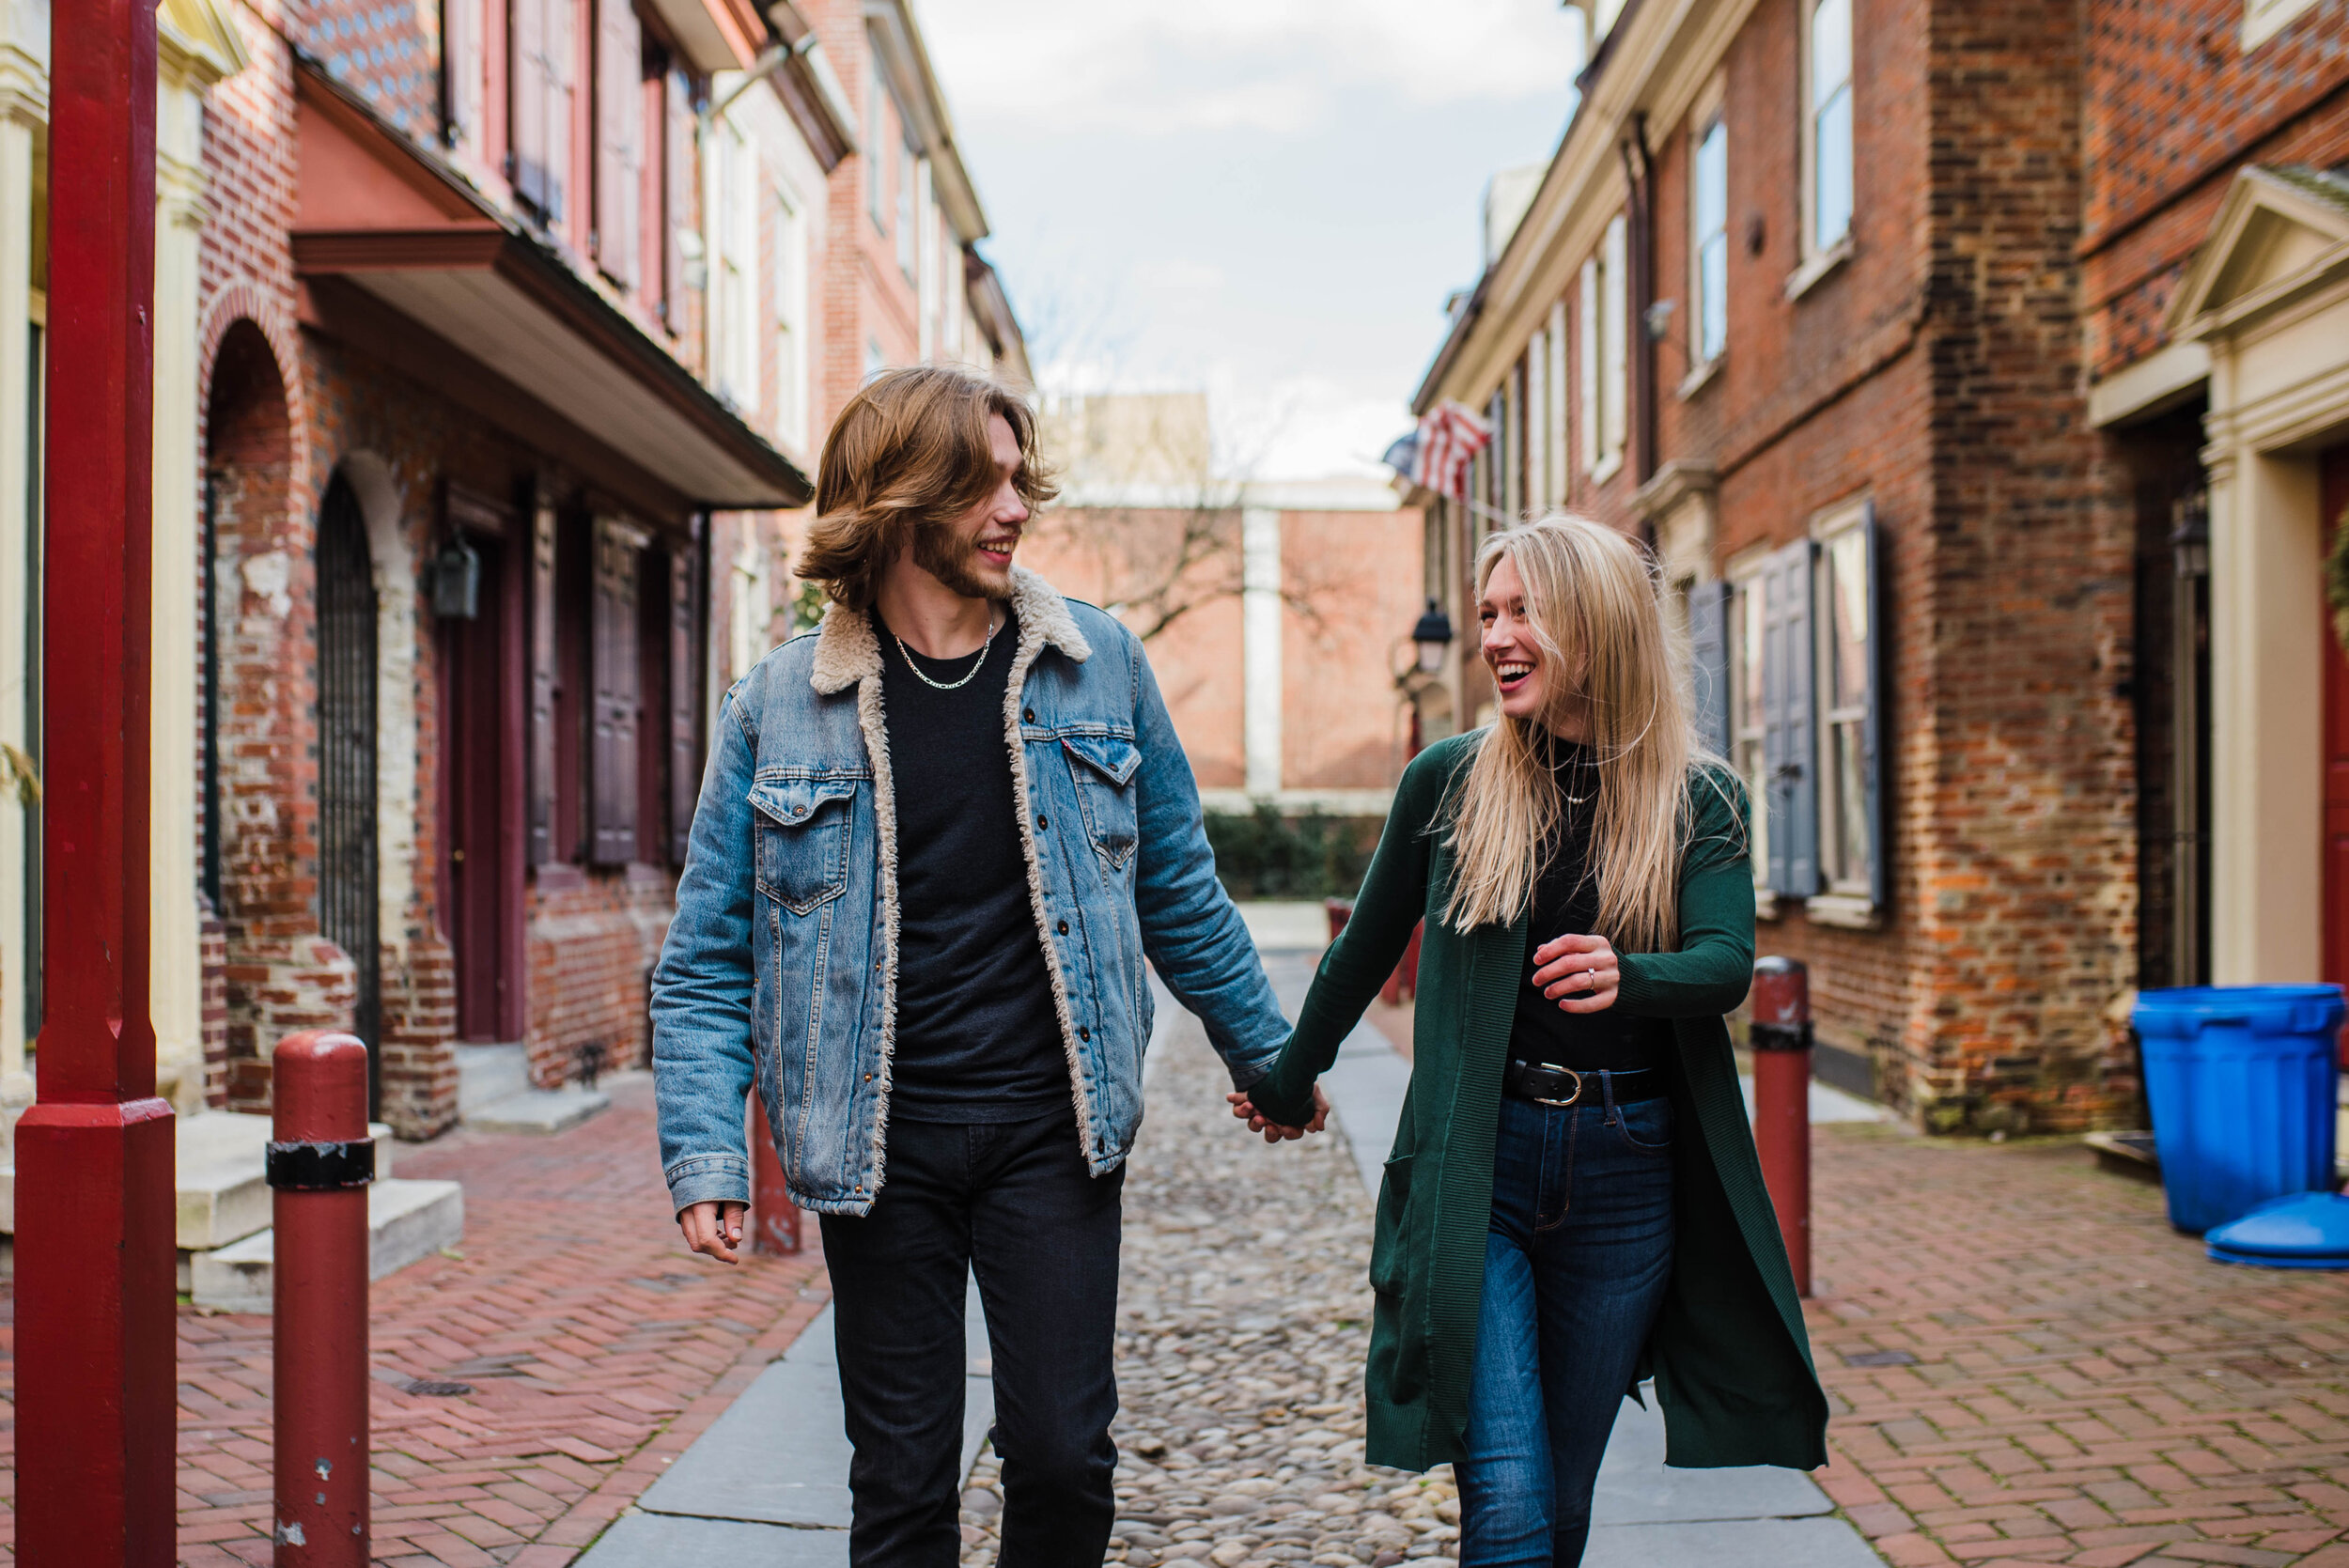 Couple holding hands and walking down a cobblestone road.